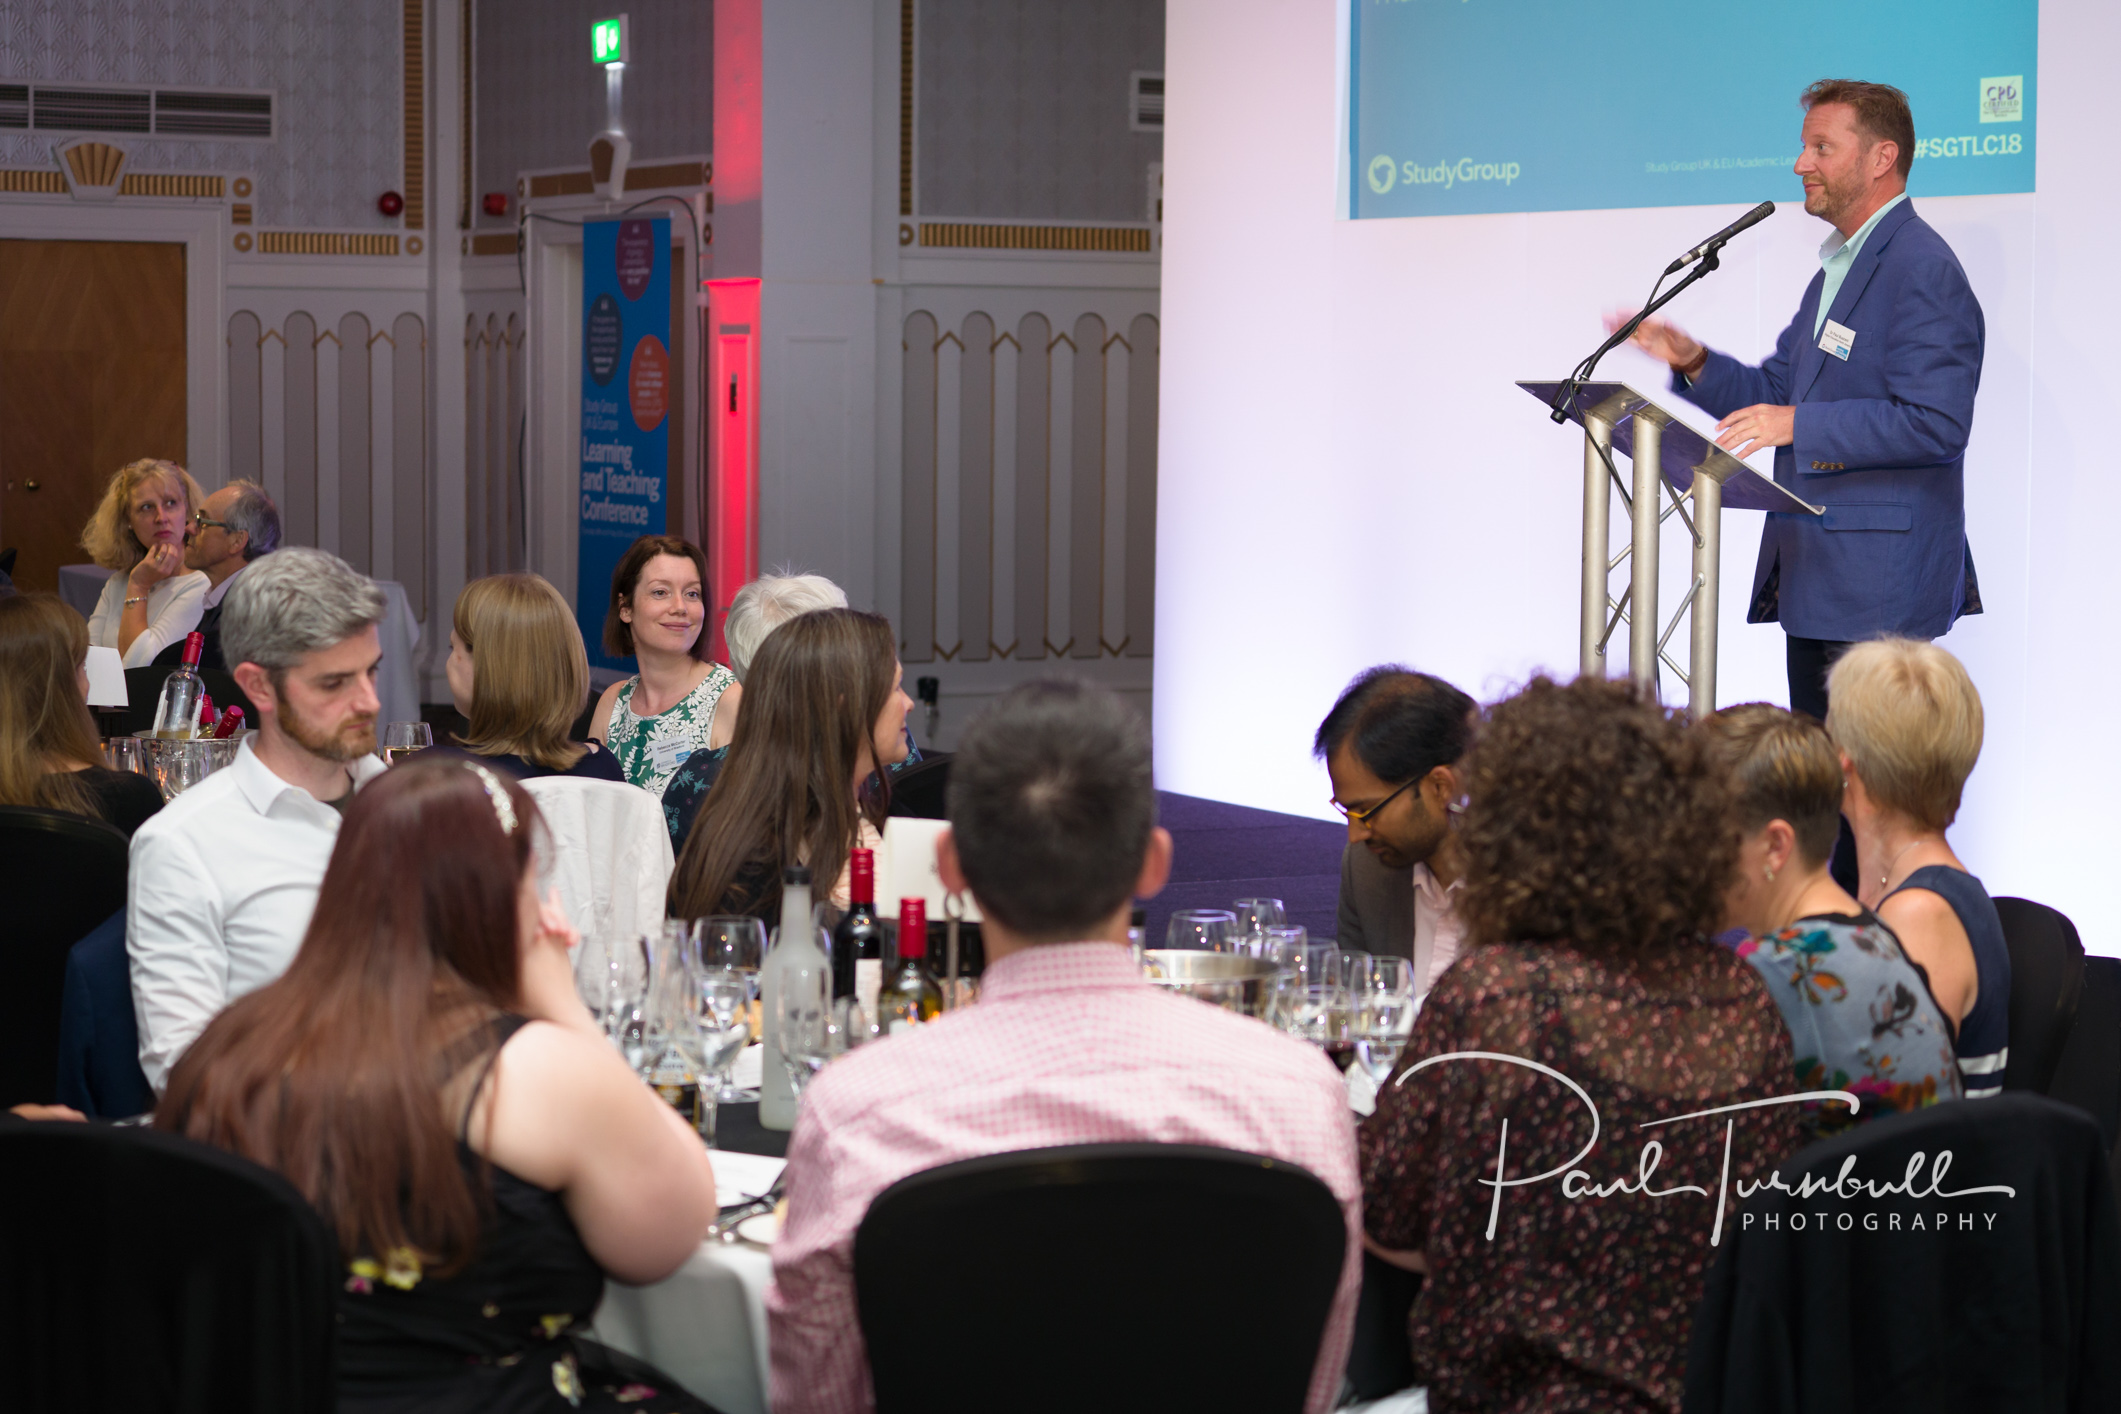 conference-event-photographer-queens-hotel-leeds-yorkshire-013.jpg